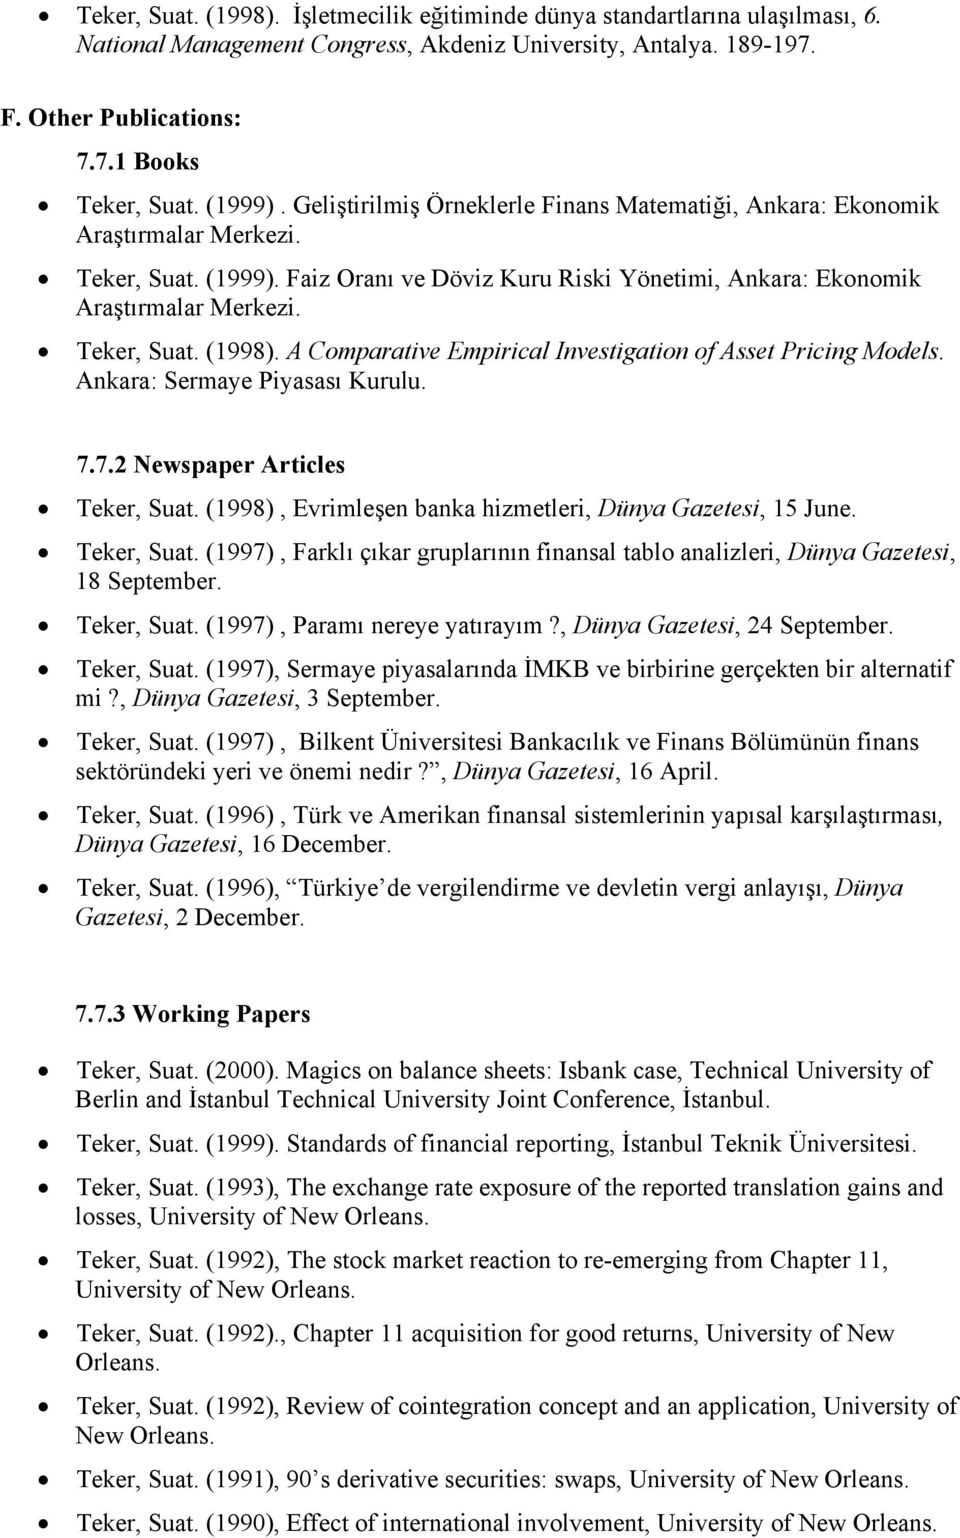 Teker, Suat. (1998). A Comparative Empirical Investigation of Asset Pricing Models. Ankara: Sermaye Piyasası Kurulu. 7.7.2 Newspaper Articles Teker, Suat.